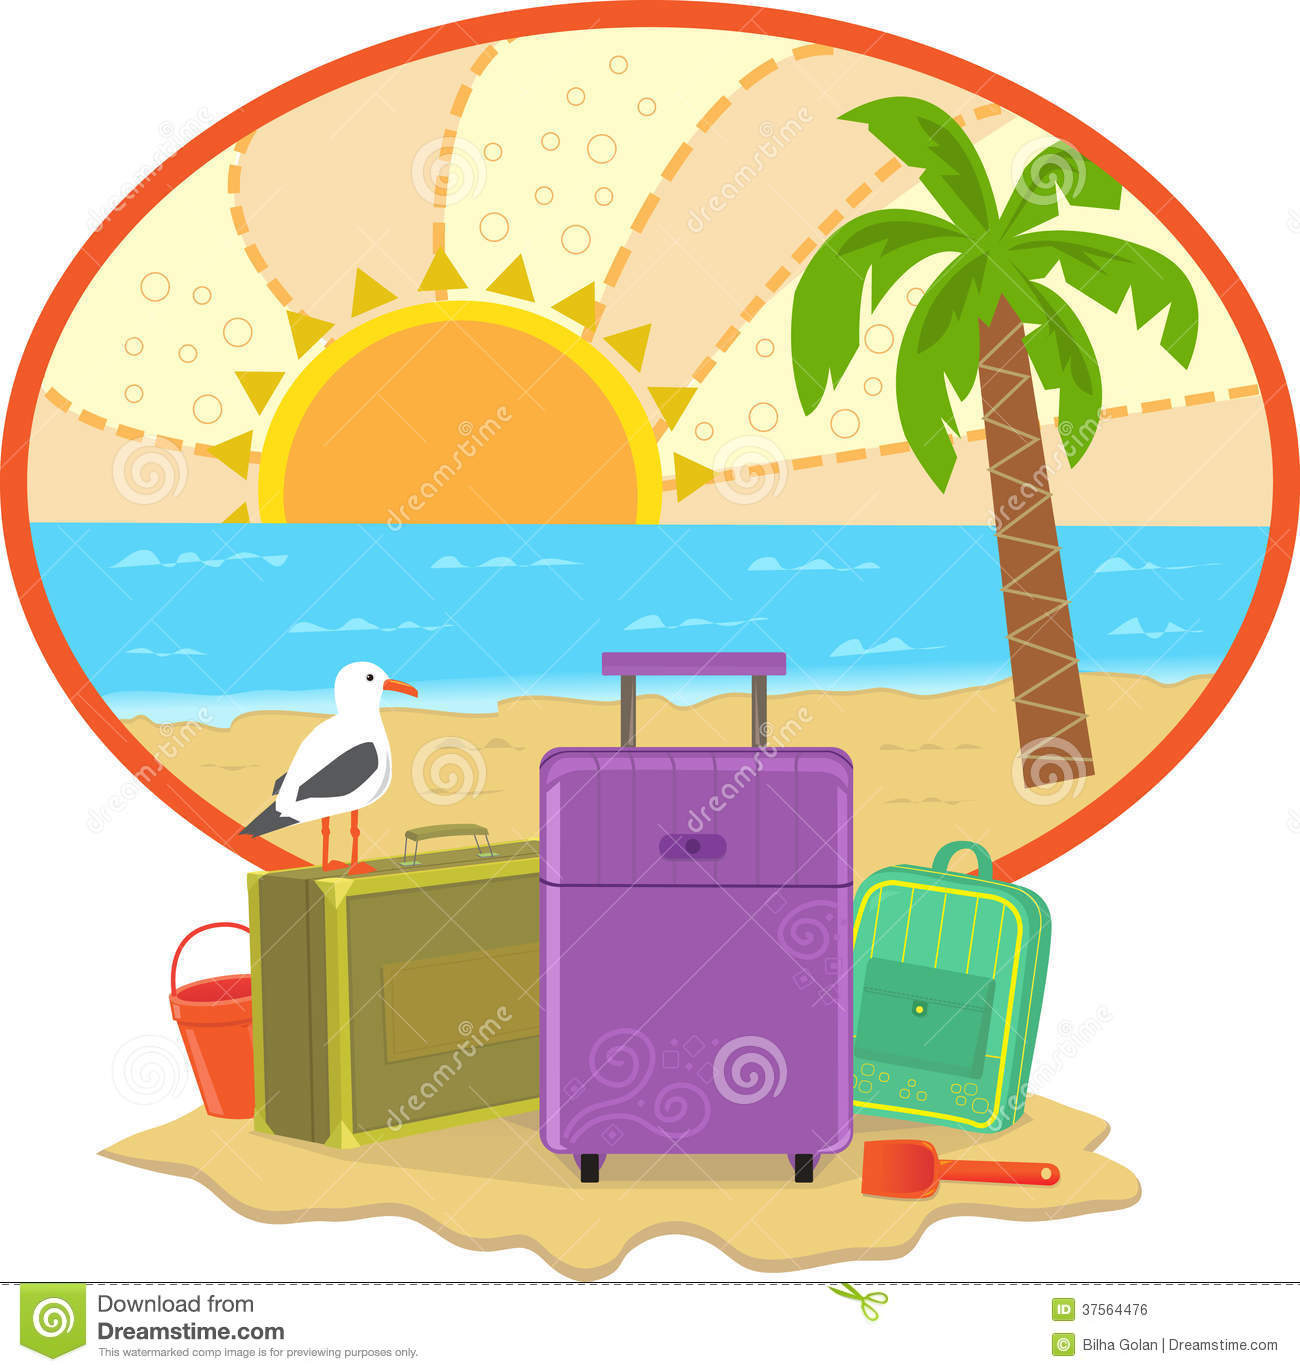 lounger, sea, summer, umbrella, vacation icon